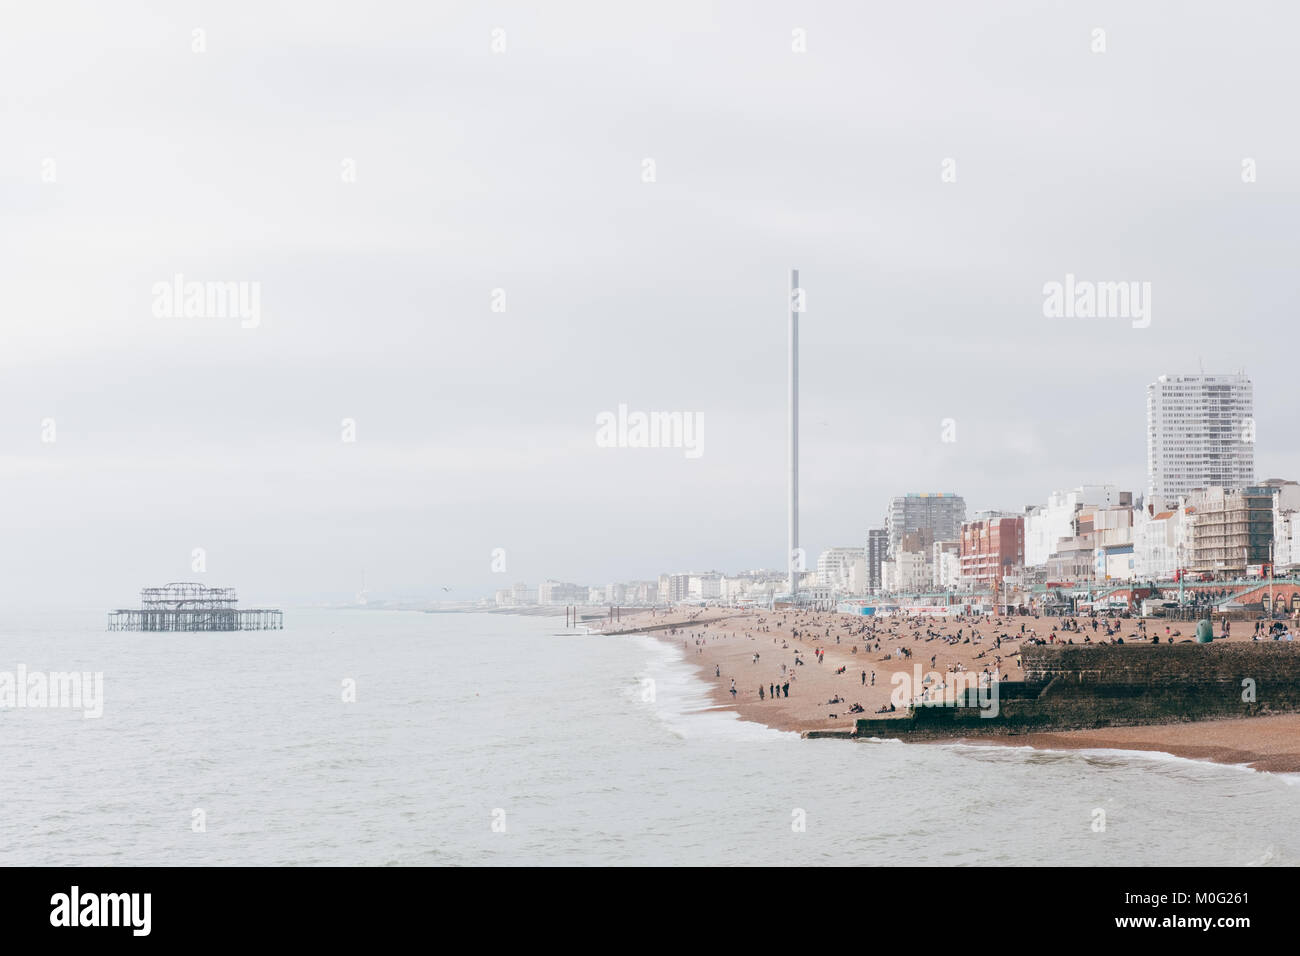 People on the beach and West Pier at Brighton, the most popular seaside destination in the UK for overseas tourists. - Stock Image